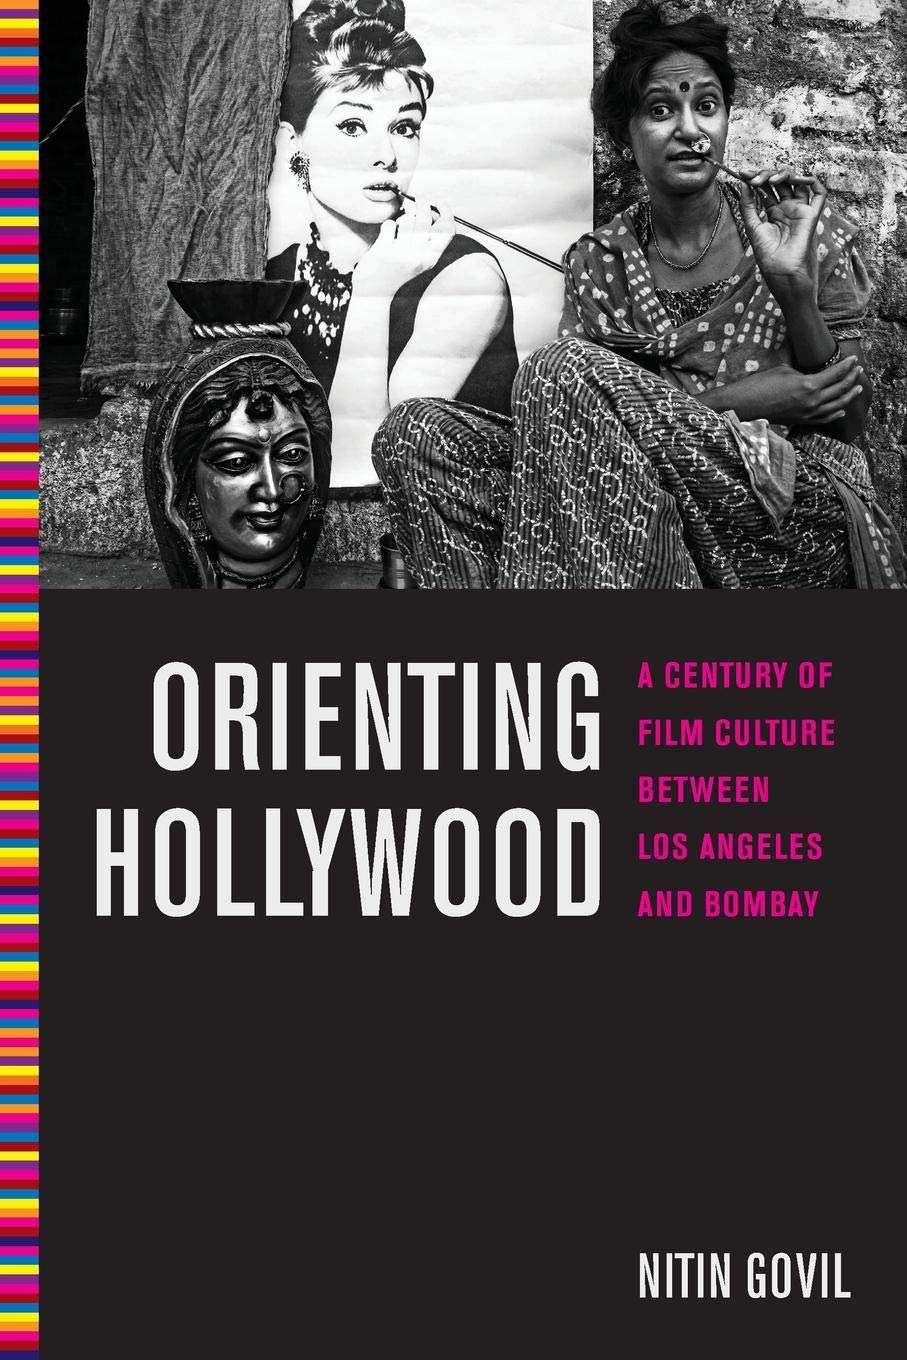 Orienting Hollywood: A Century of Film Culture between Los Angeles and Bombay (Critical Cultural Communication) pdf epub